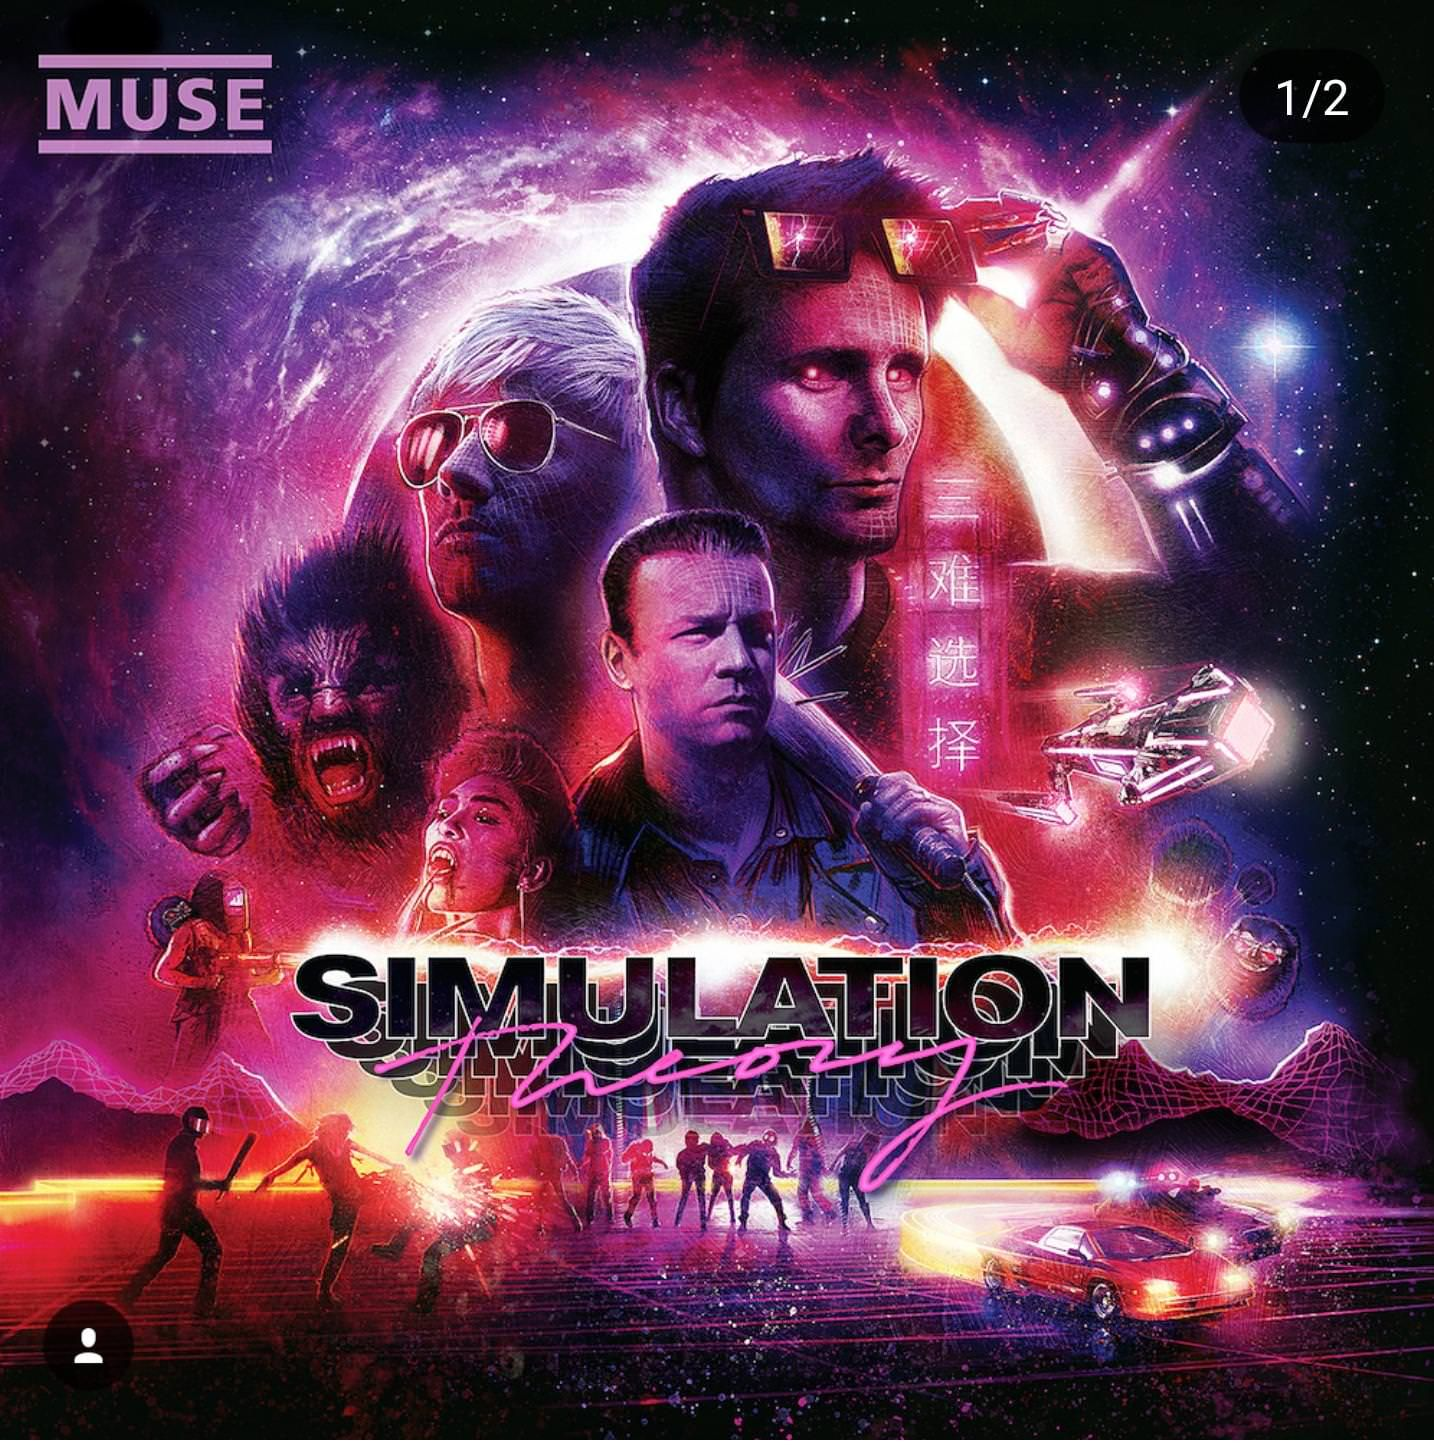 Muse S New Album Simulation Theory Is Very Outrun Outrun